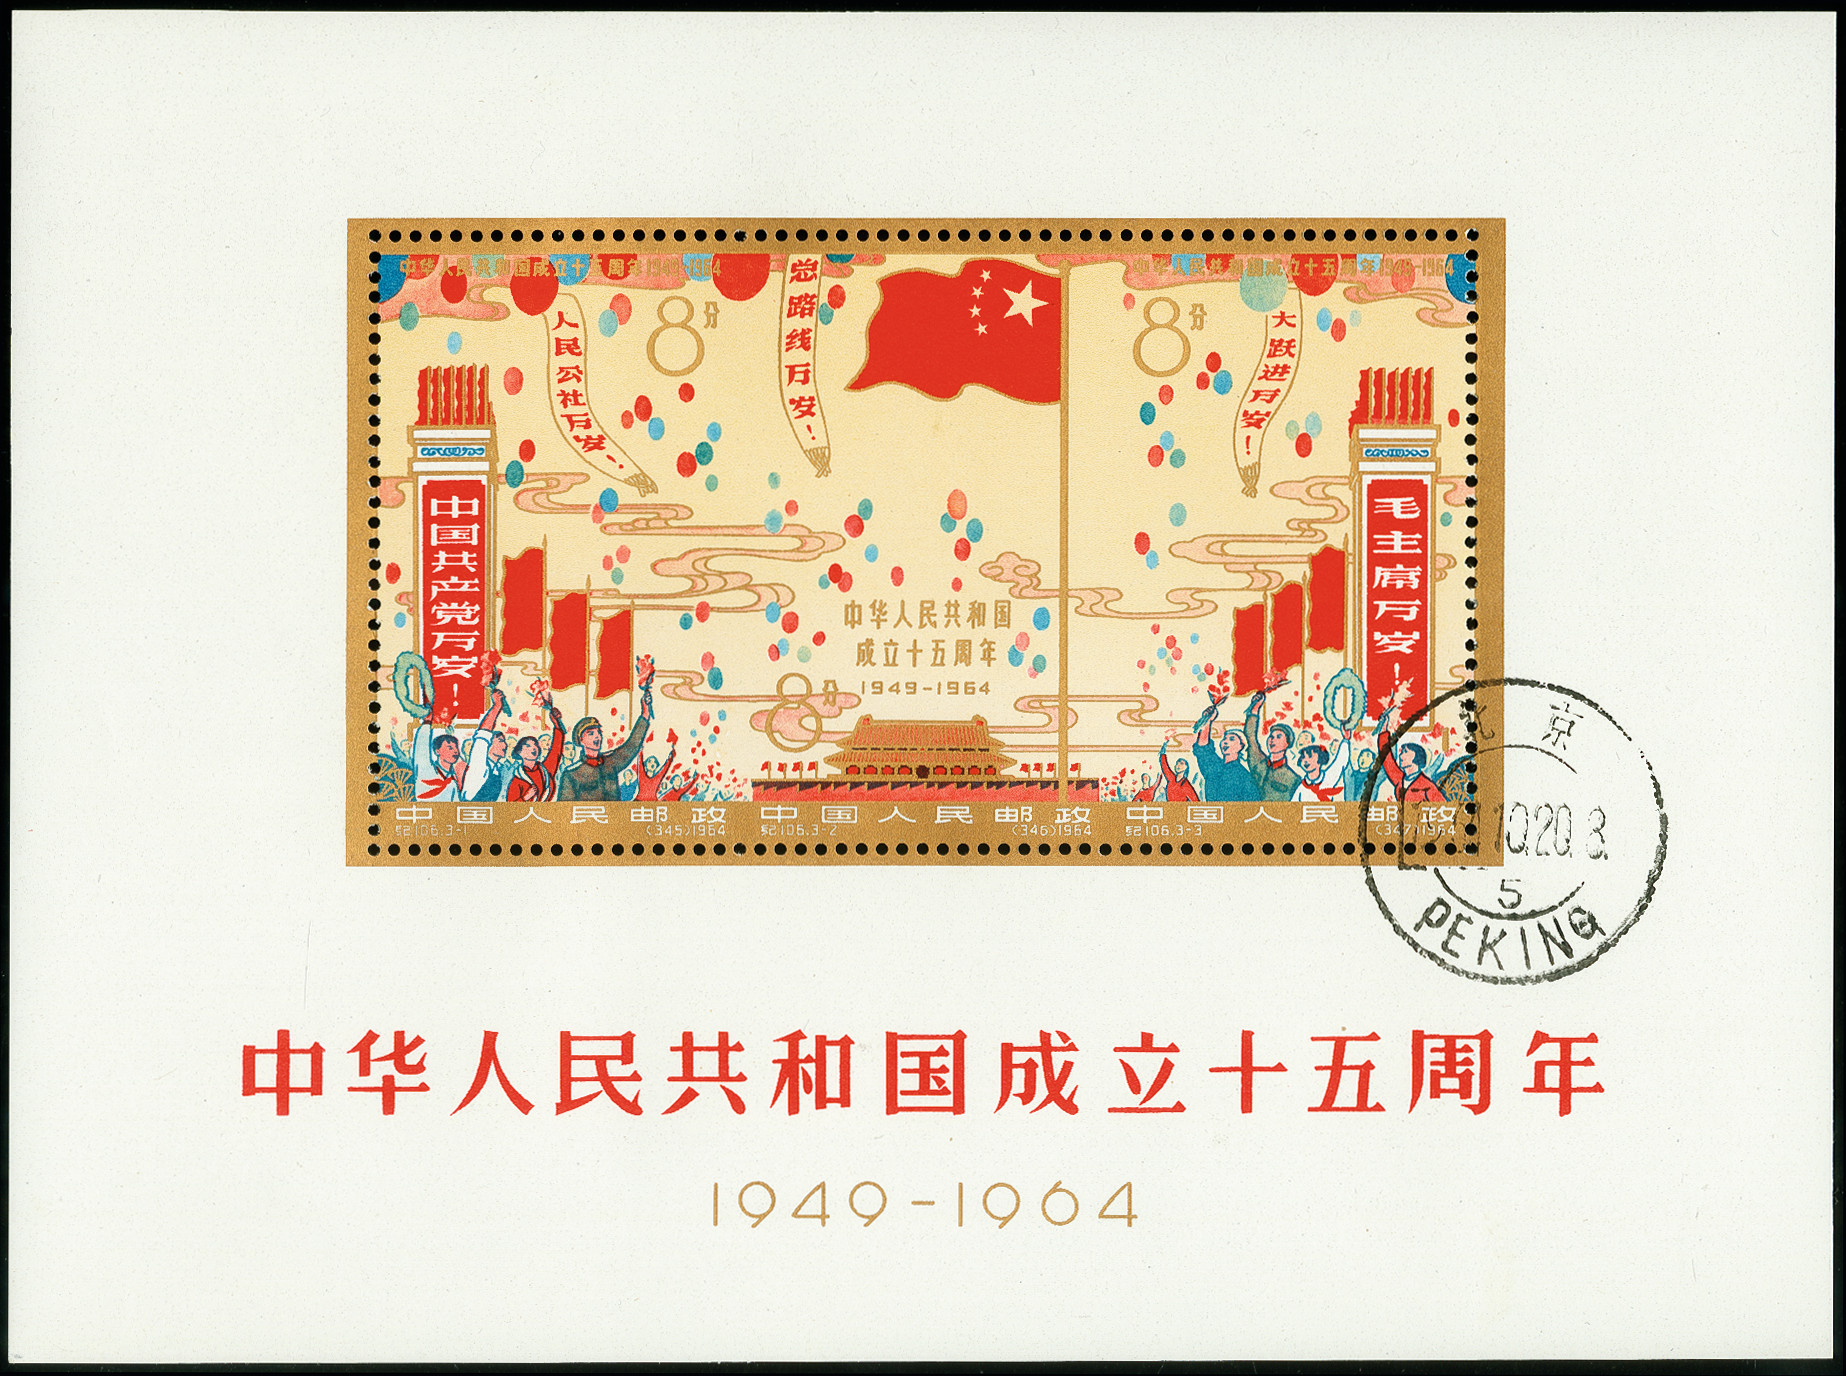 Lot 998 - Overseas People's Republic of China -  Heinrich Koehler Auktionen Auction #367- Day 1